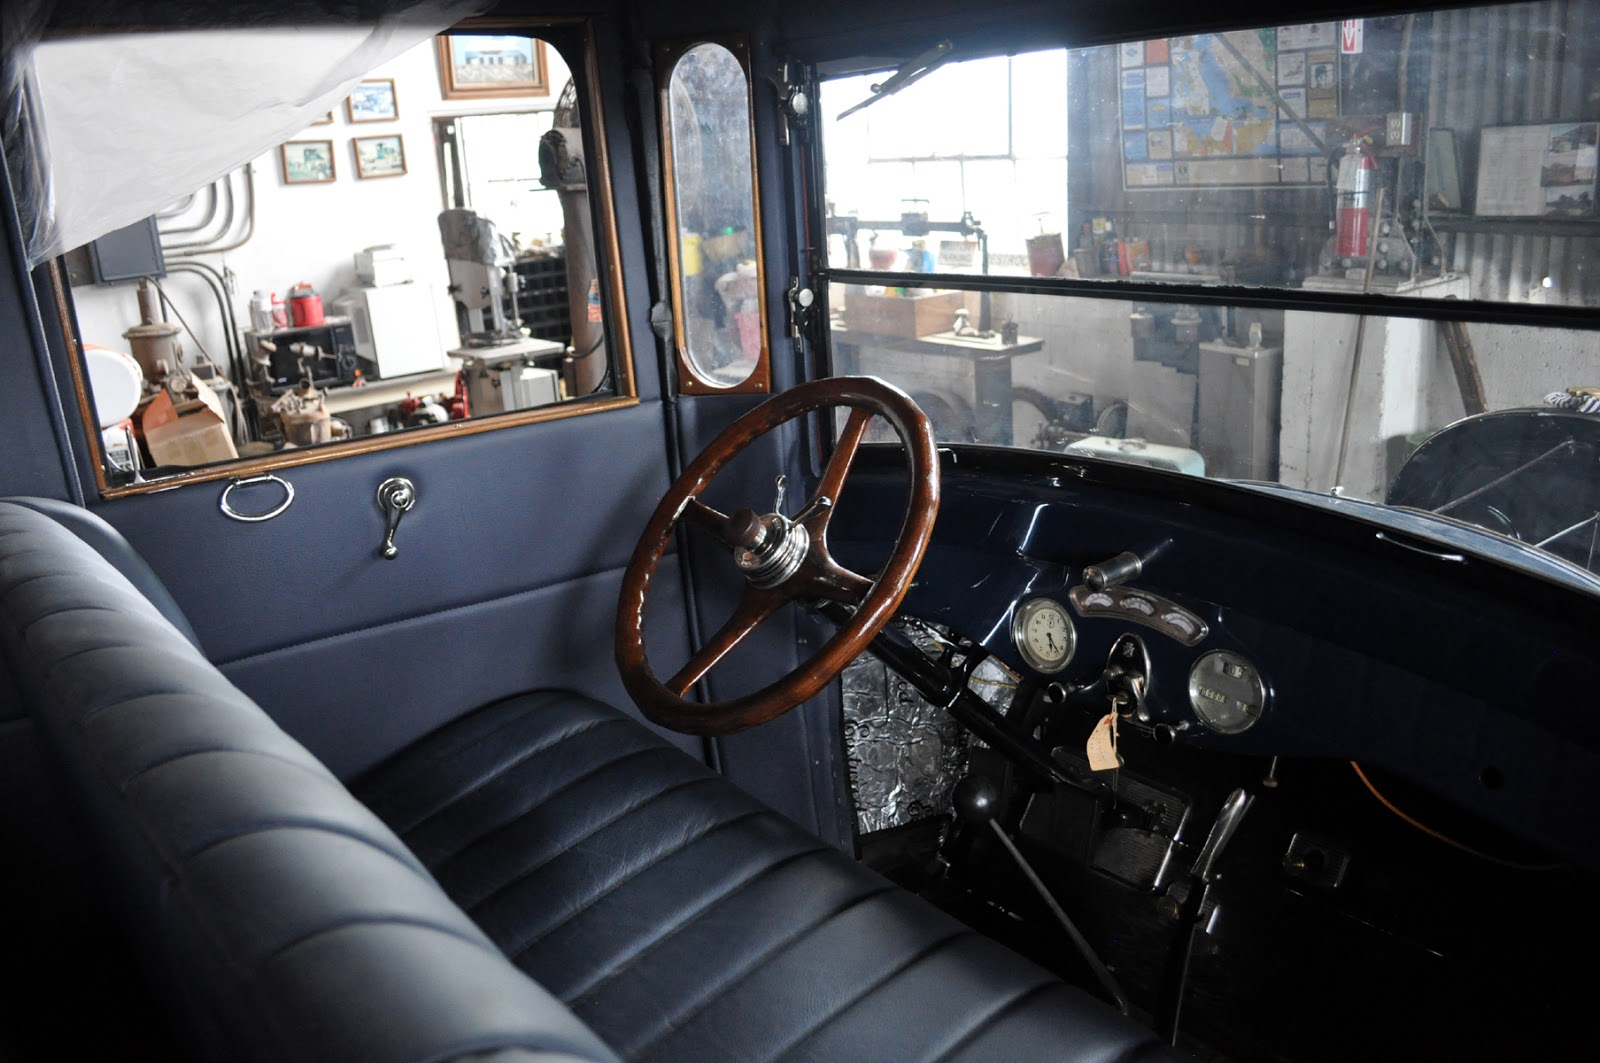 Just A Car Guy 1924 Cadillac 20 Passenger Bus From Barely Ignition Circuit Diagram For The 1946 47 Nash Ambassador This Is Largest Add On Trunk Ive Come Across